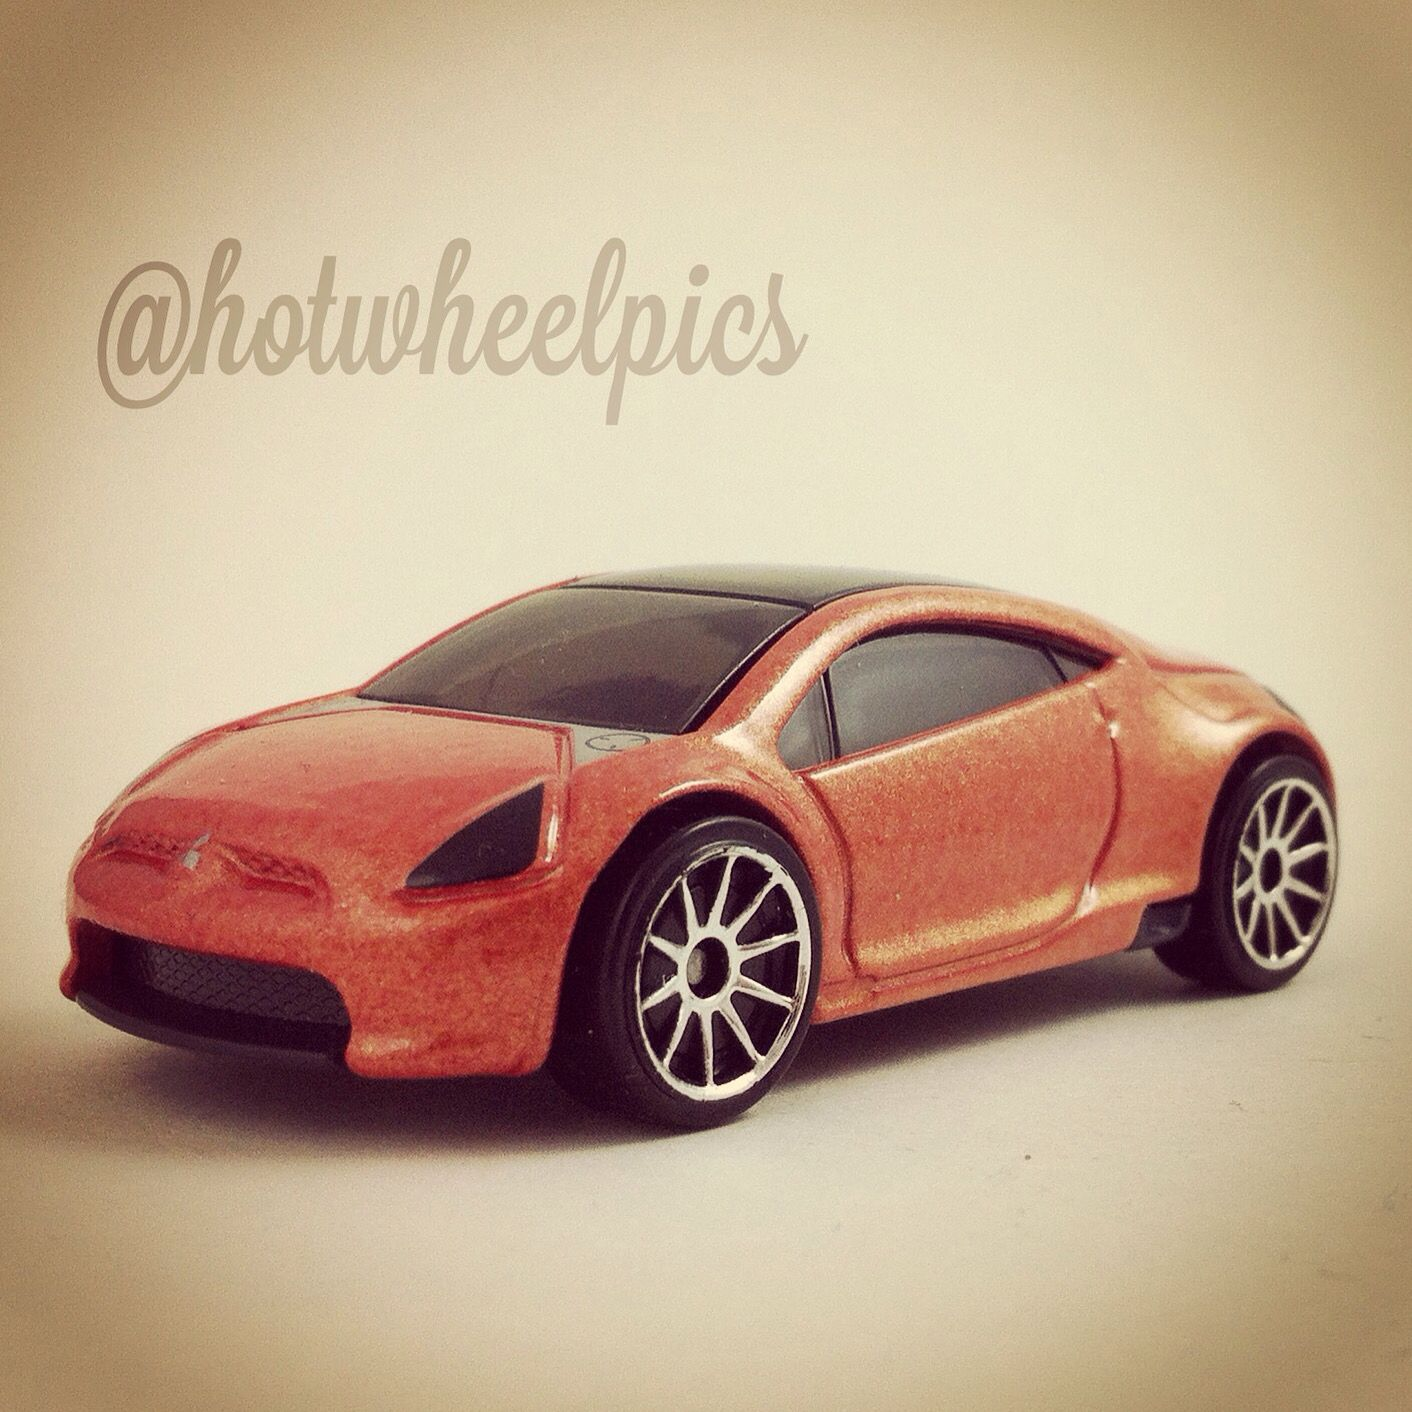 Mitsubishi Eclipse Concept Car 2005 Hot Wheels First Editions